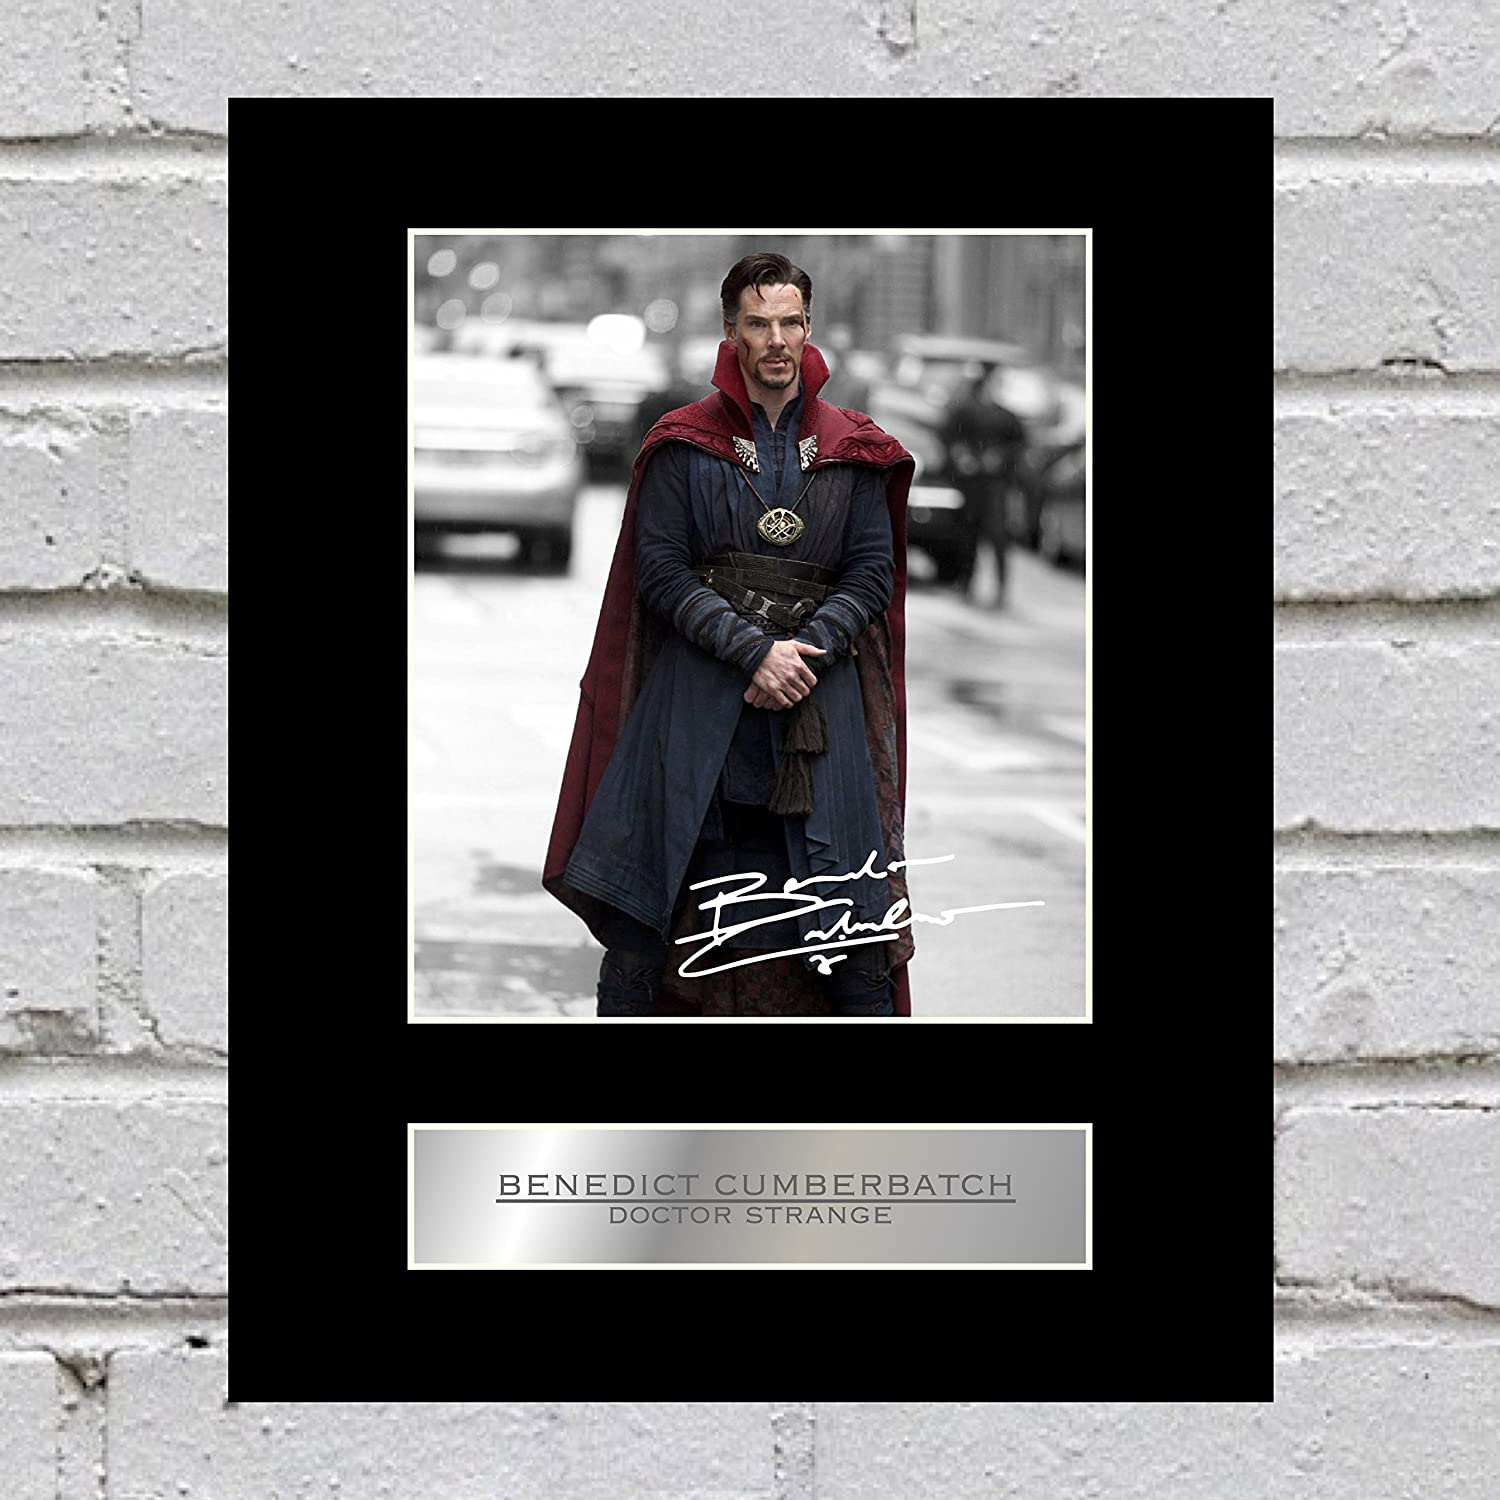 Benedict Cumberbatch Signed Mounted Photo Display Doctor Strange Iconic pics